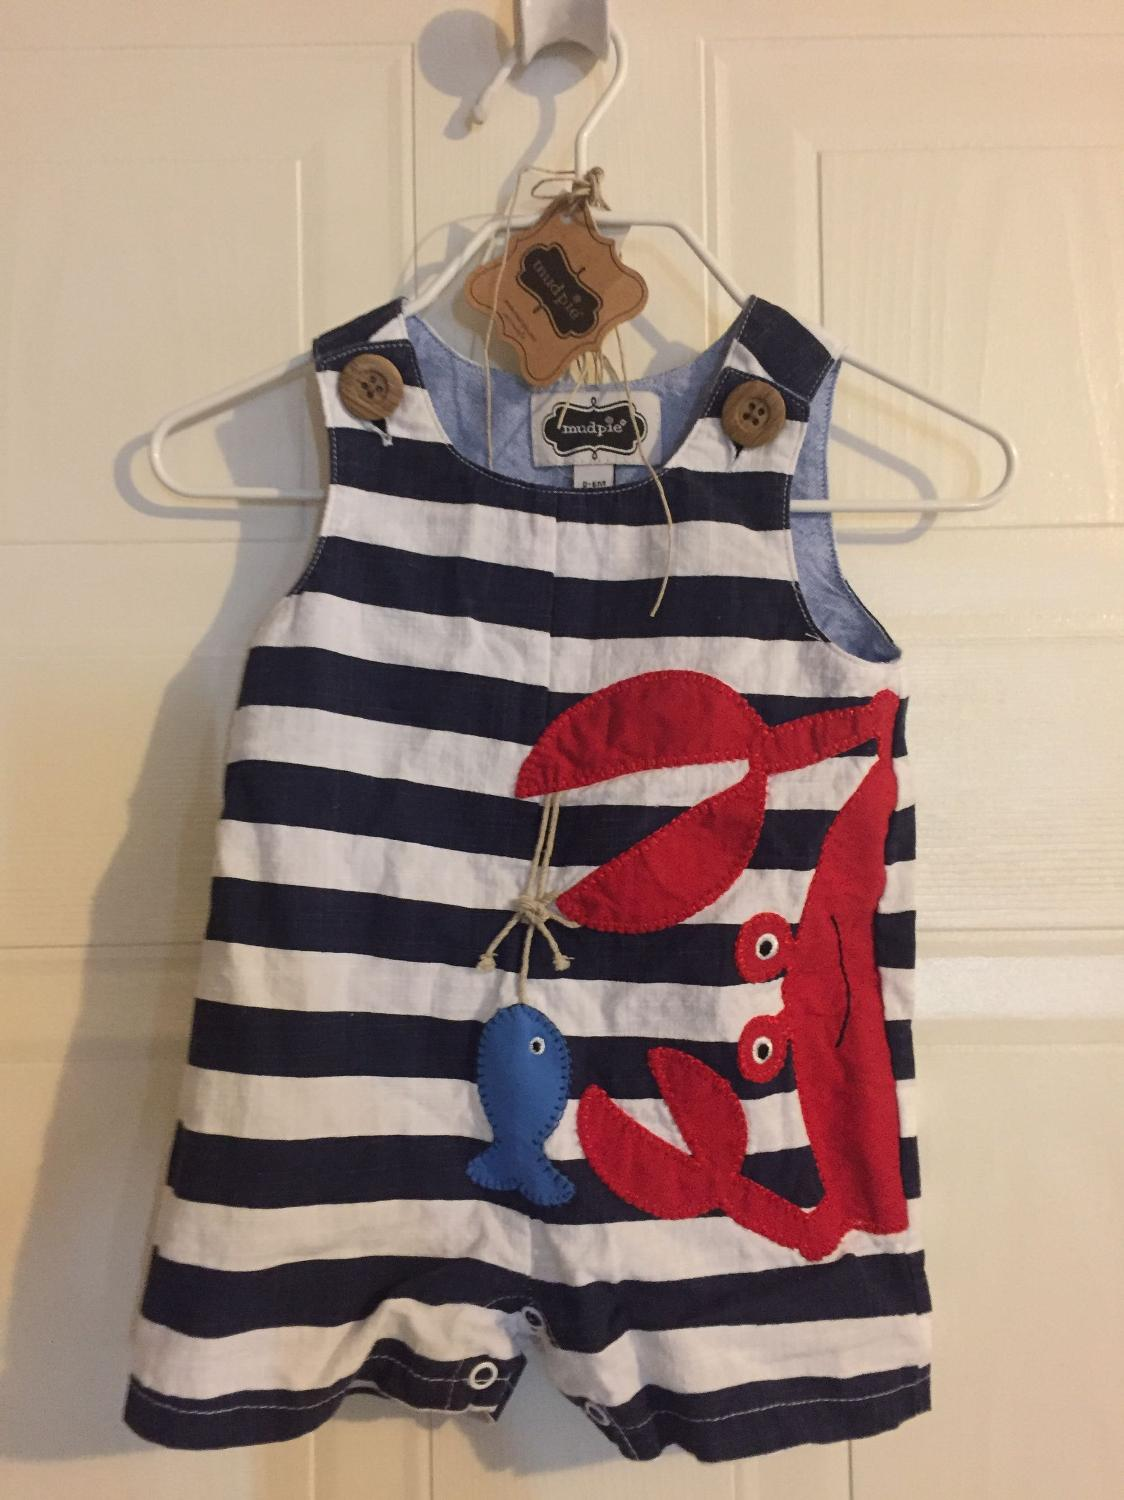 Best Mudpie 0-6mo Shortall Euc for sale in Mobile, Alabama for 2017